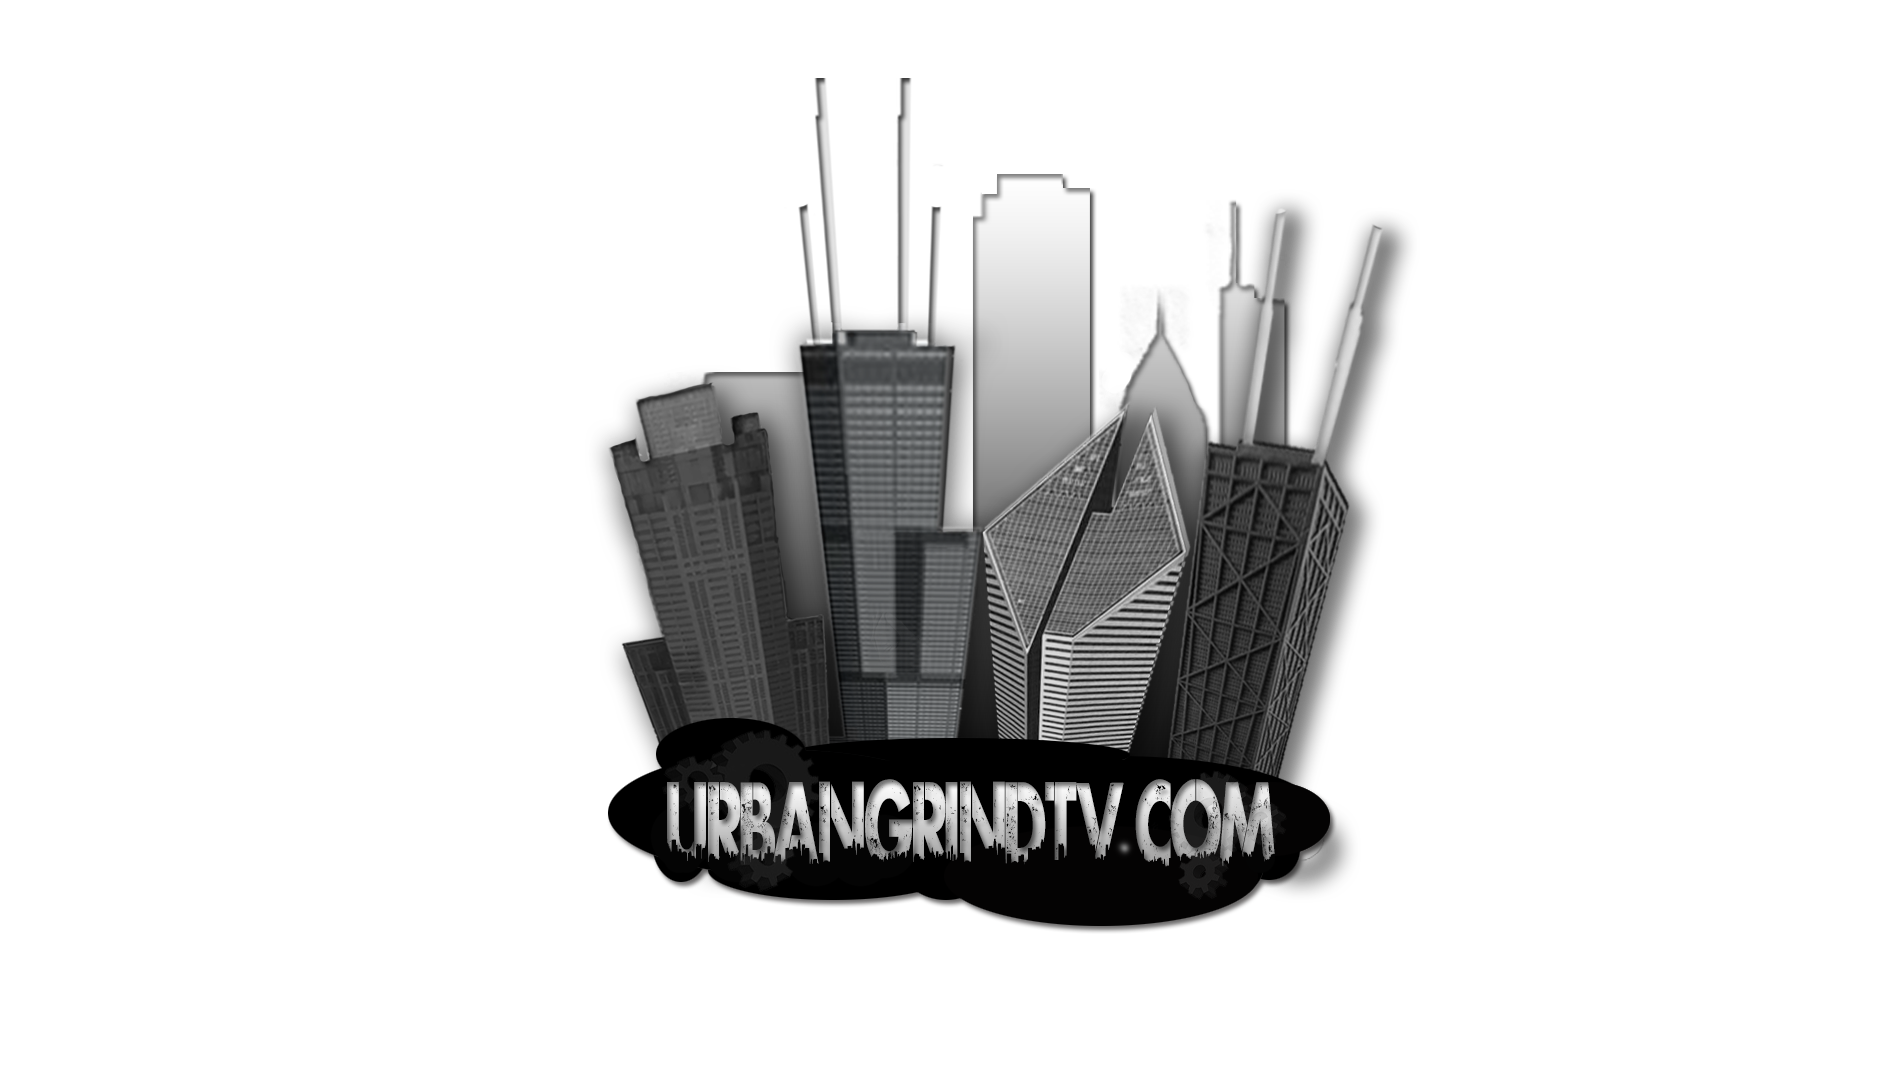 Urban Grind TV LOGO (No background) 2018